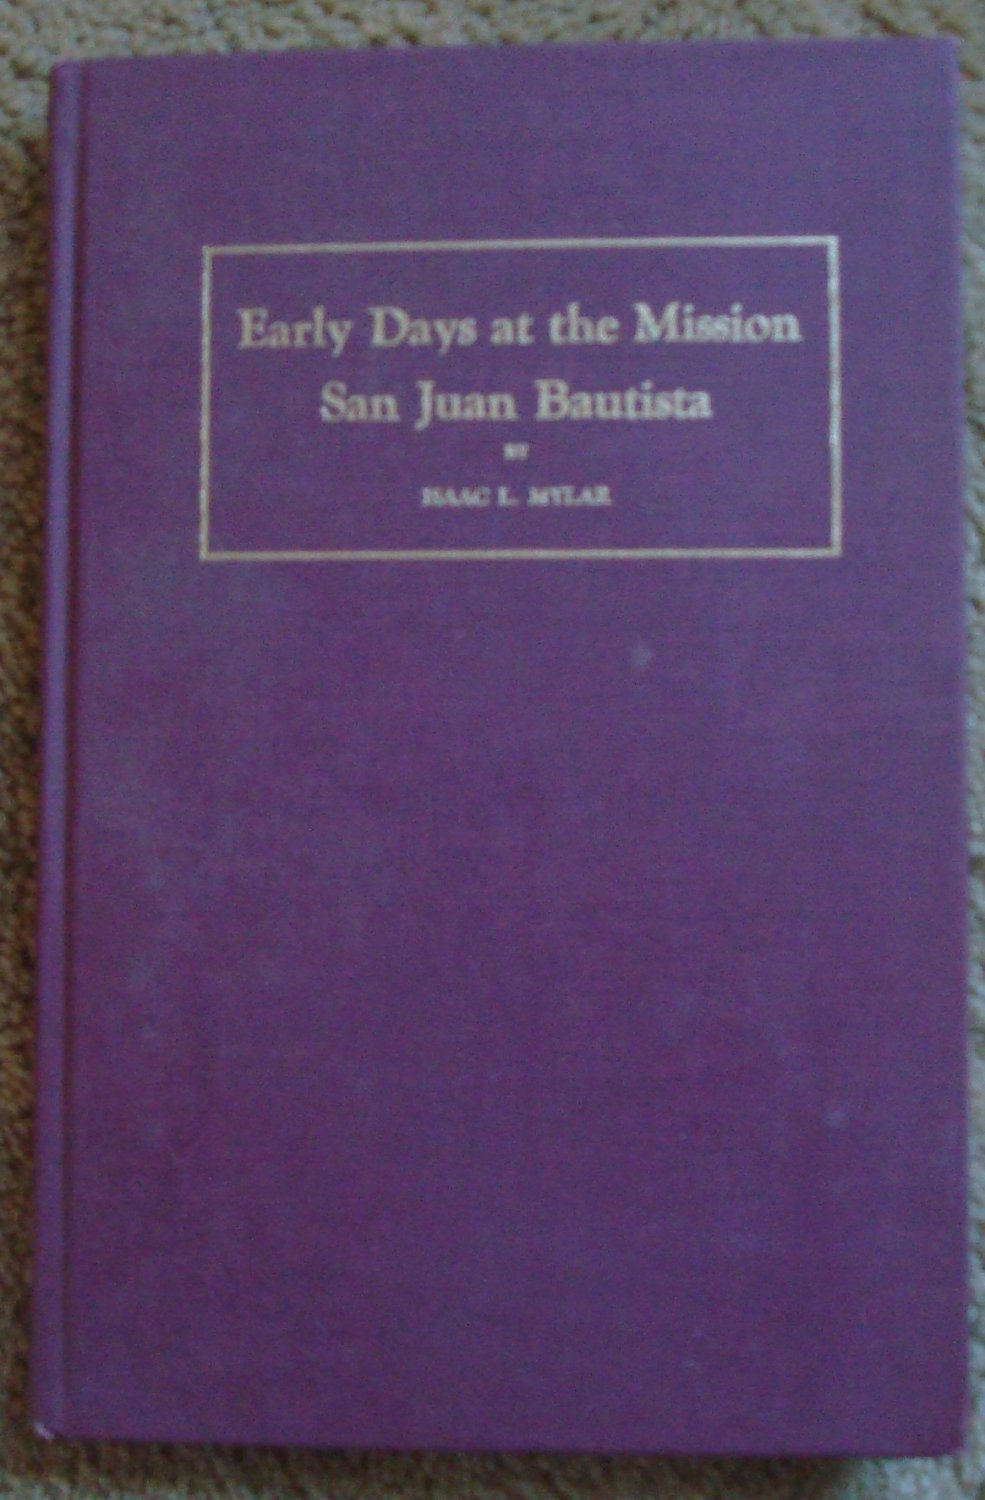 Early Days at the Mission San Juan Bautista